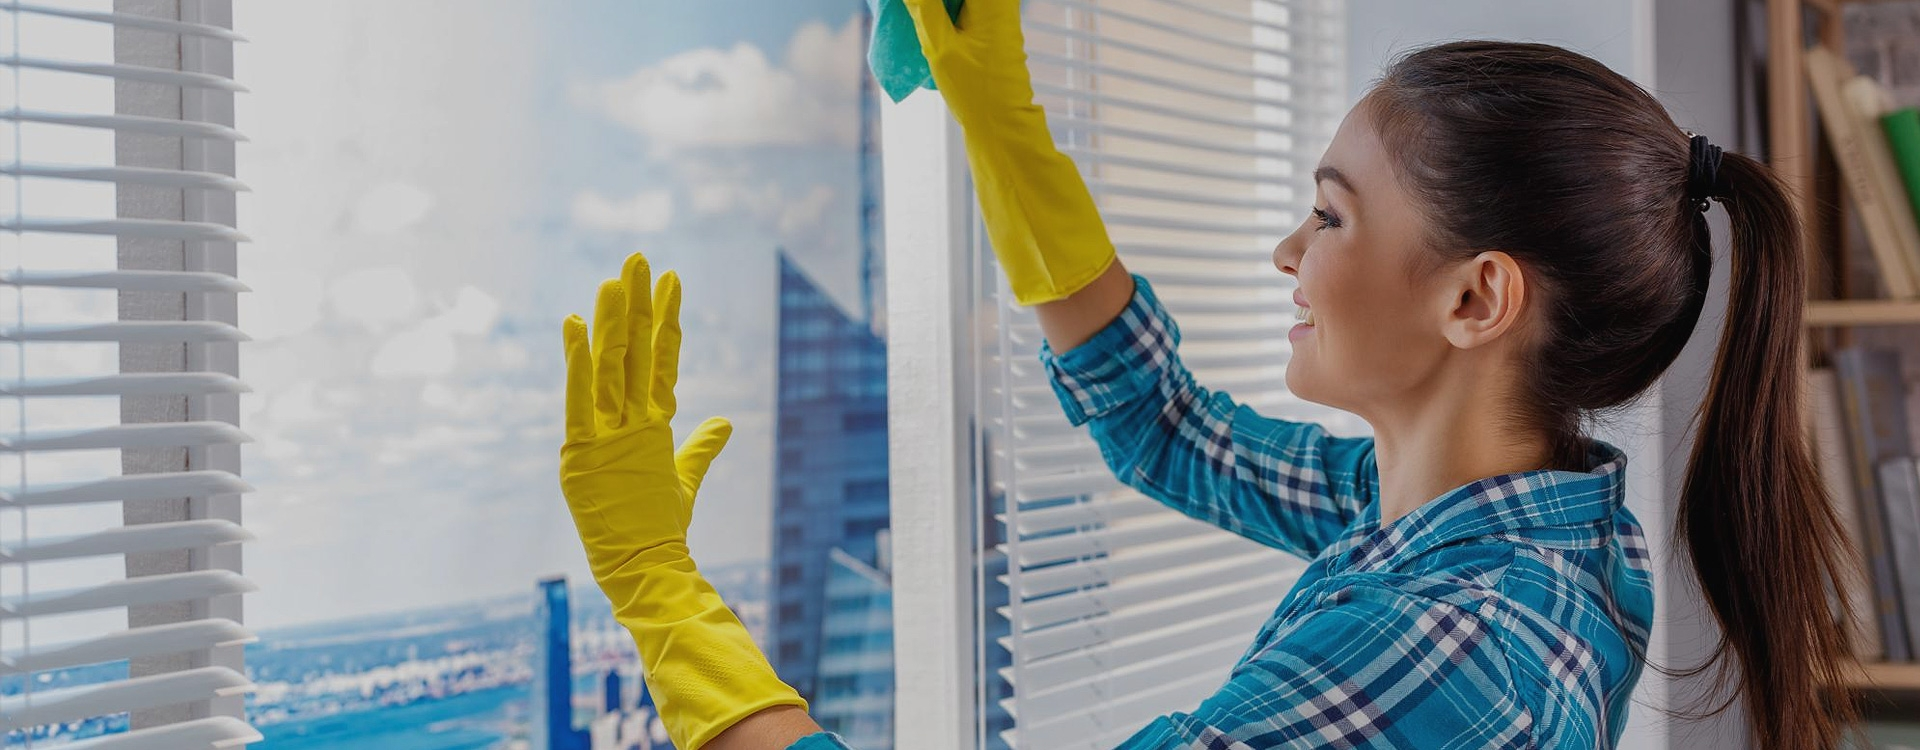 MPL Cleaning Services LLC (@mplcleaningservices) Cover Image